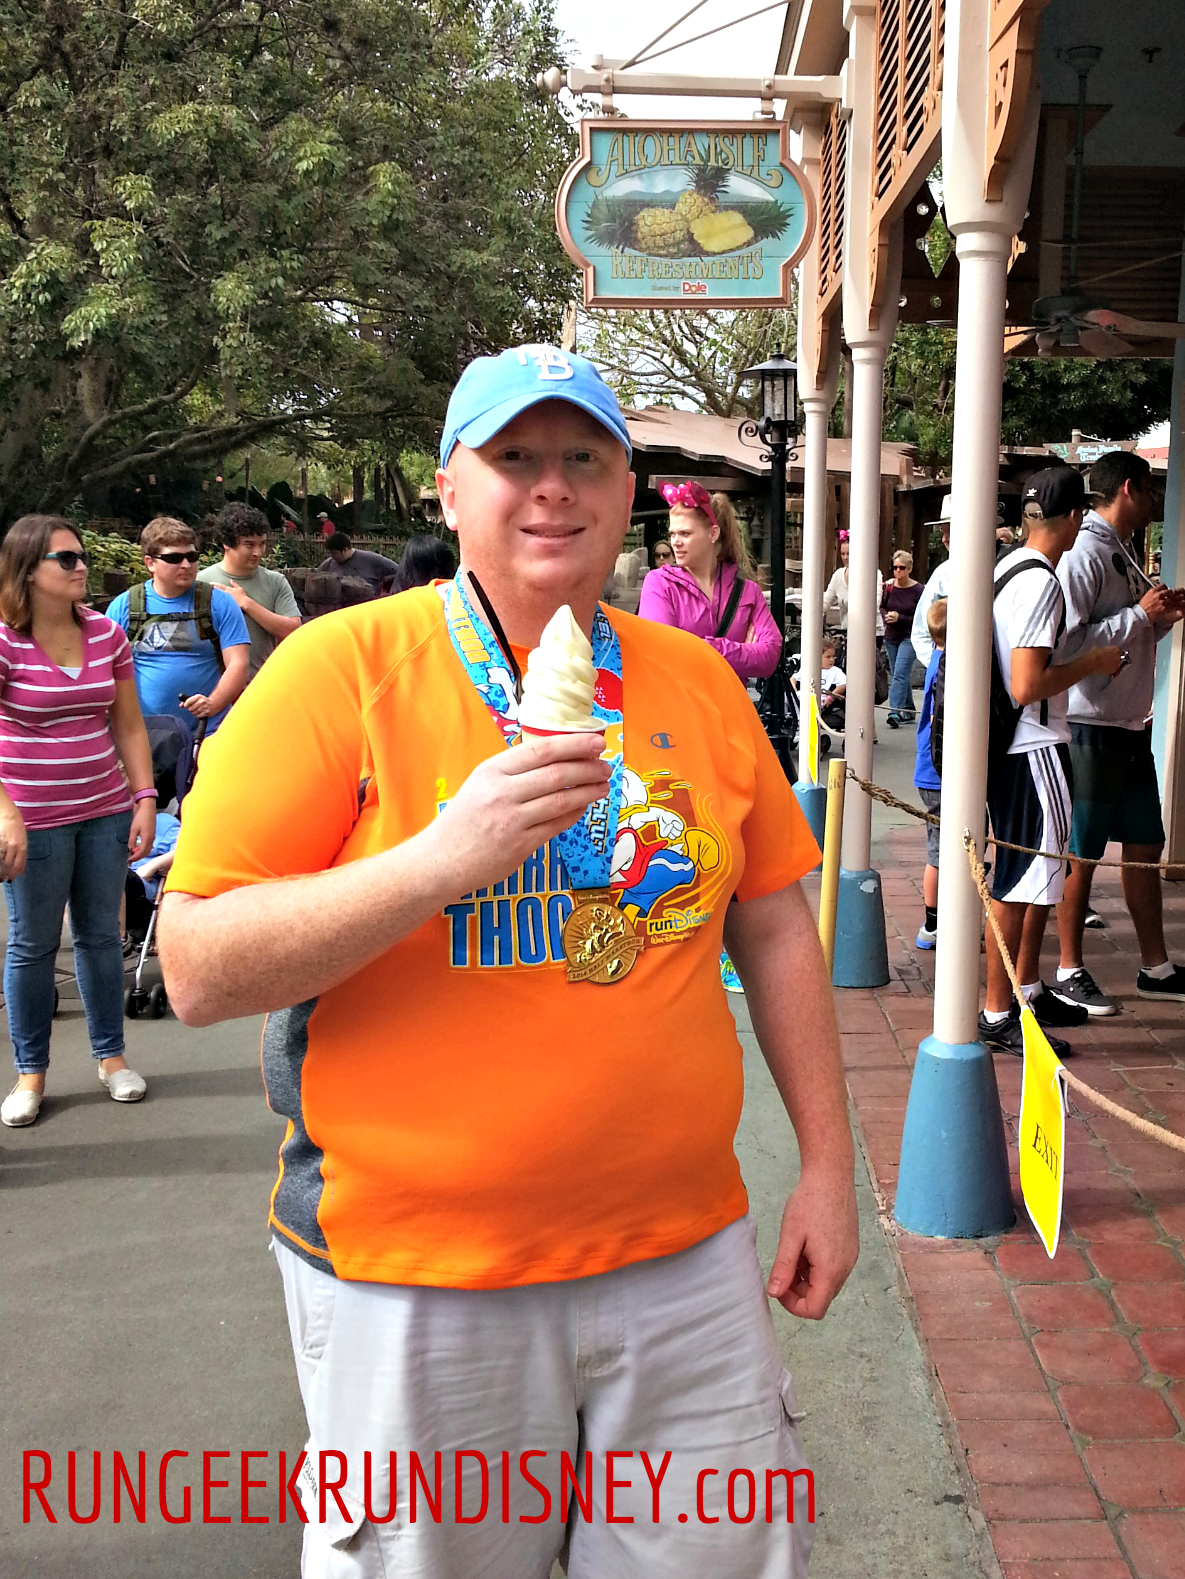 The Dole Whip